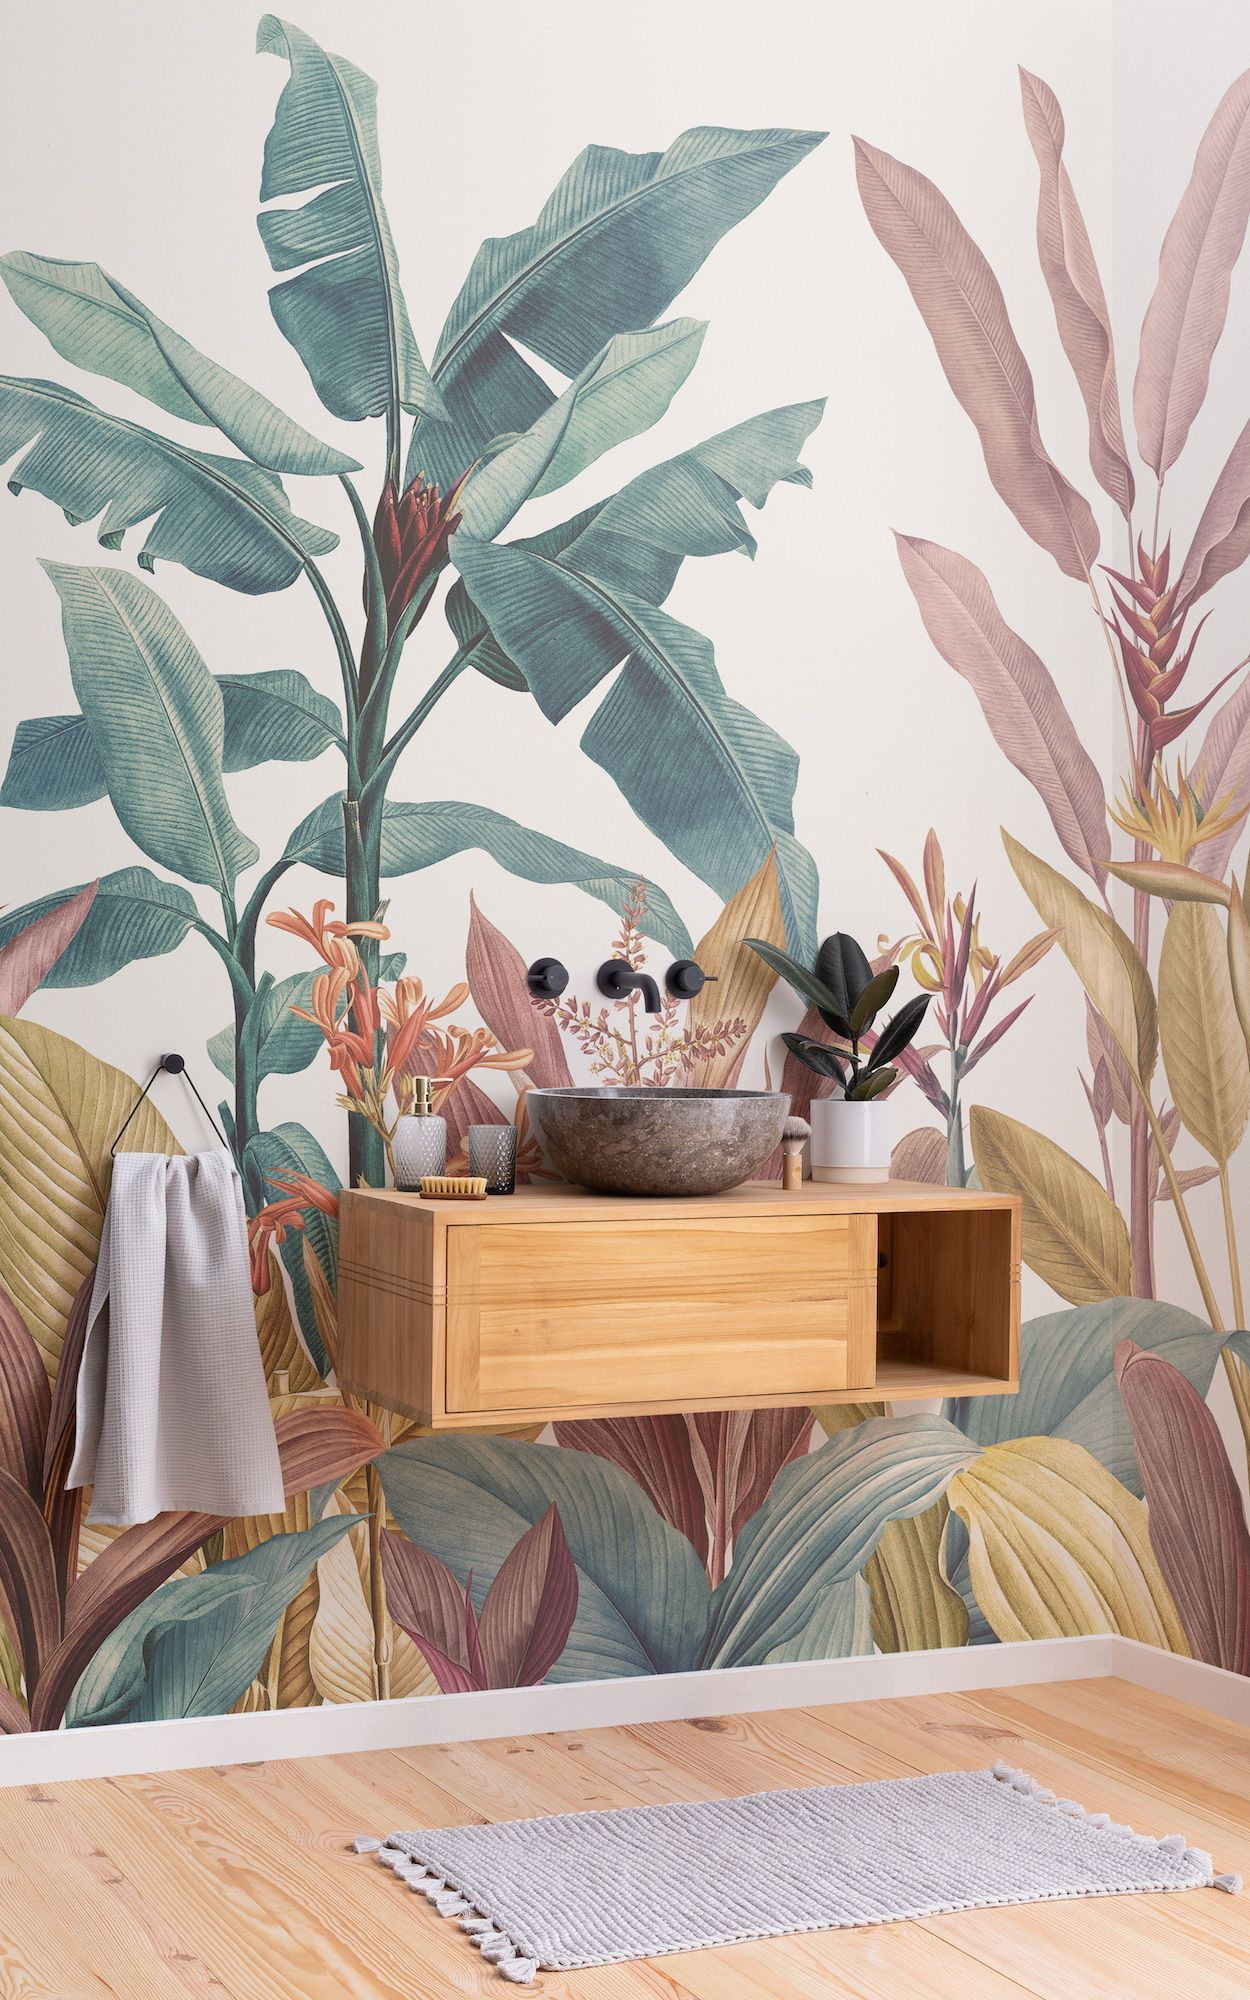 These beautiful wall murals are inspired by the most popular botanical artist in history